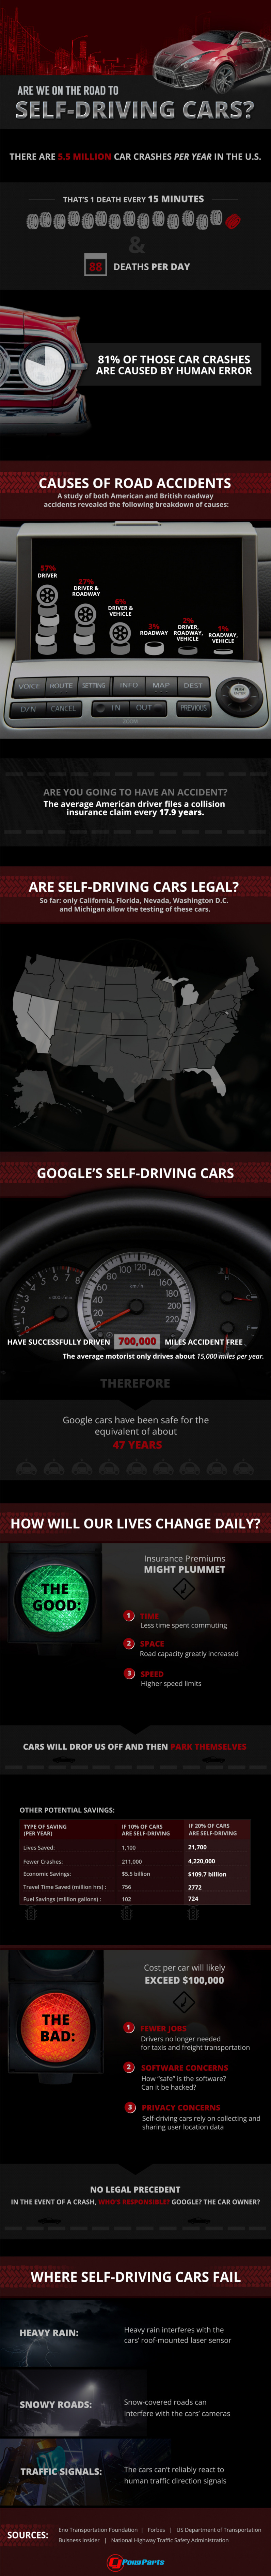 self-driving-cars-infographic